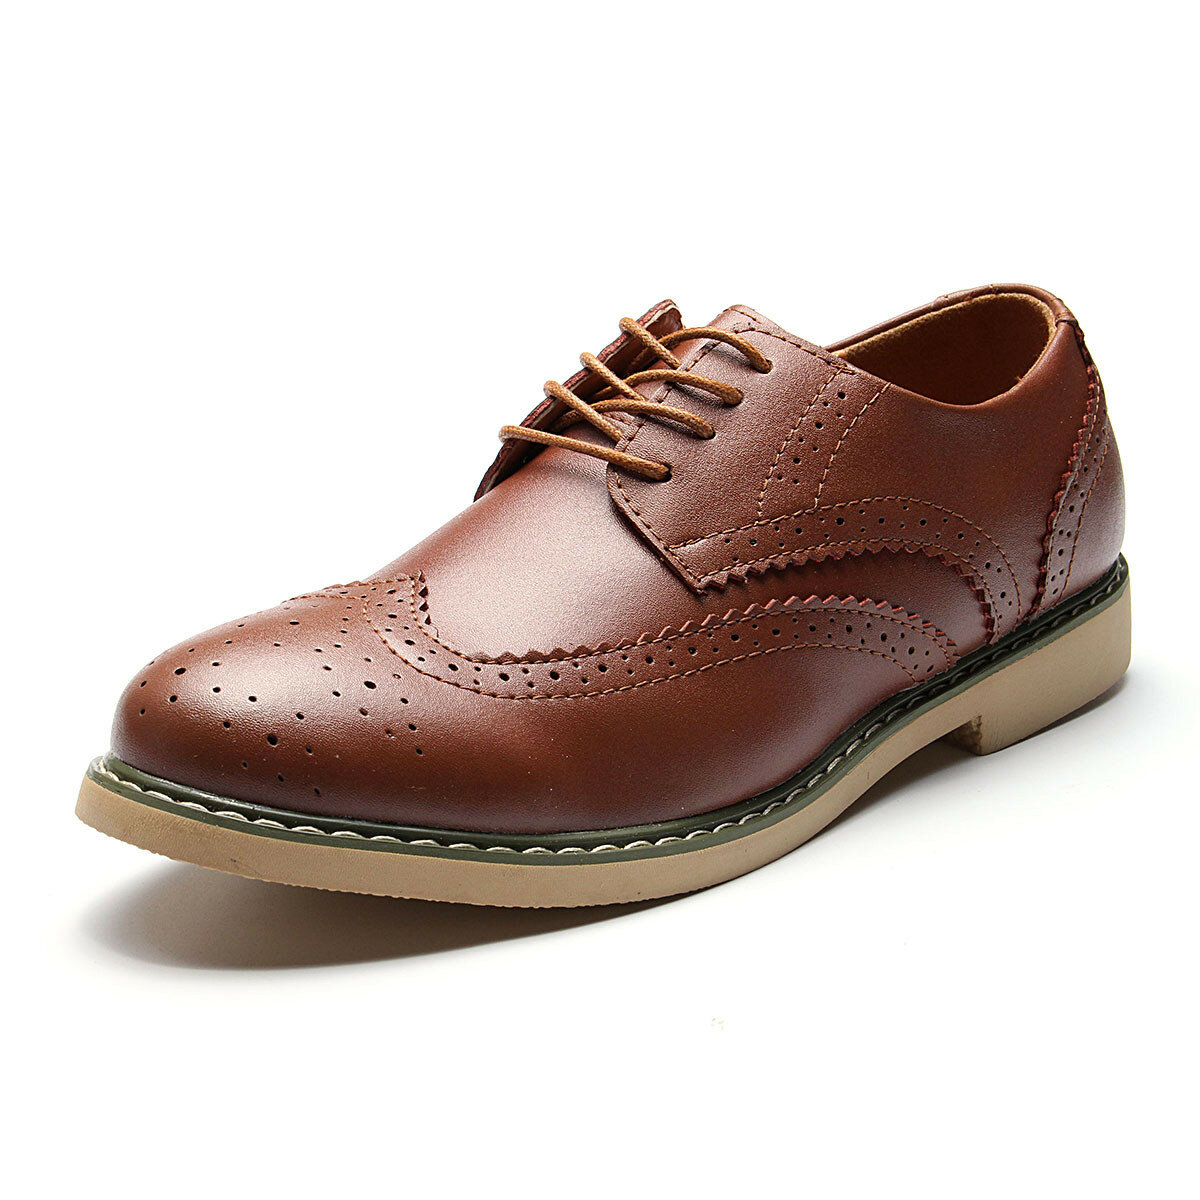 Men's Hollow Out Brogue Pointed Toe Vintage Classic Casual Oxfords Shoes